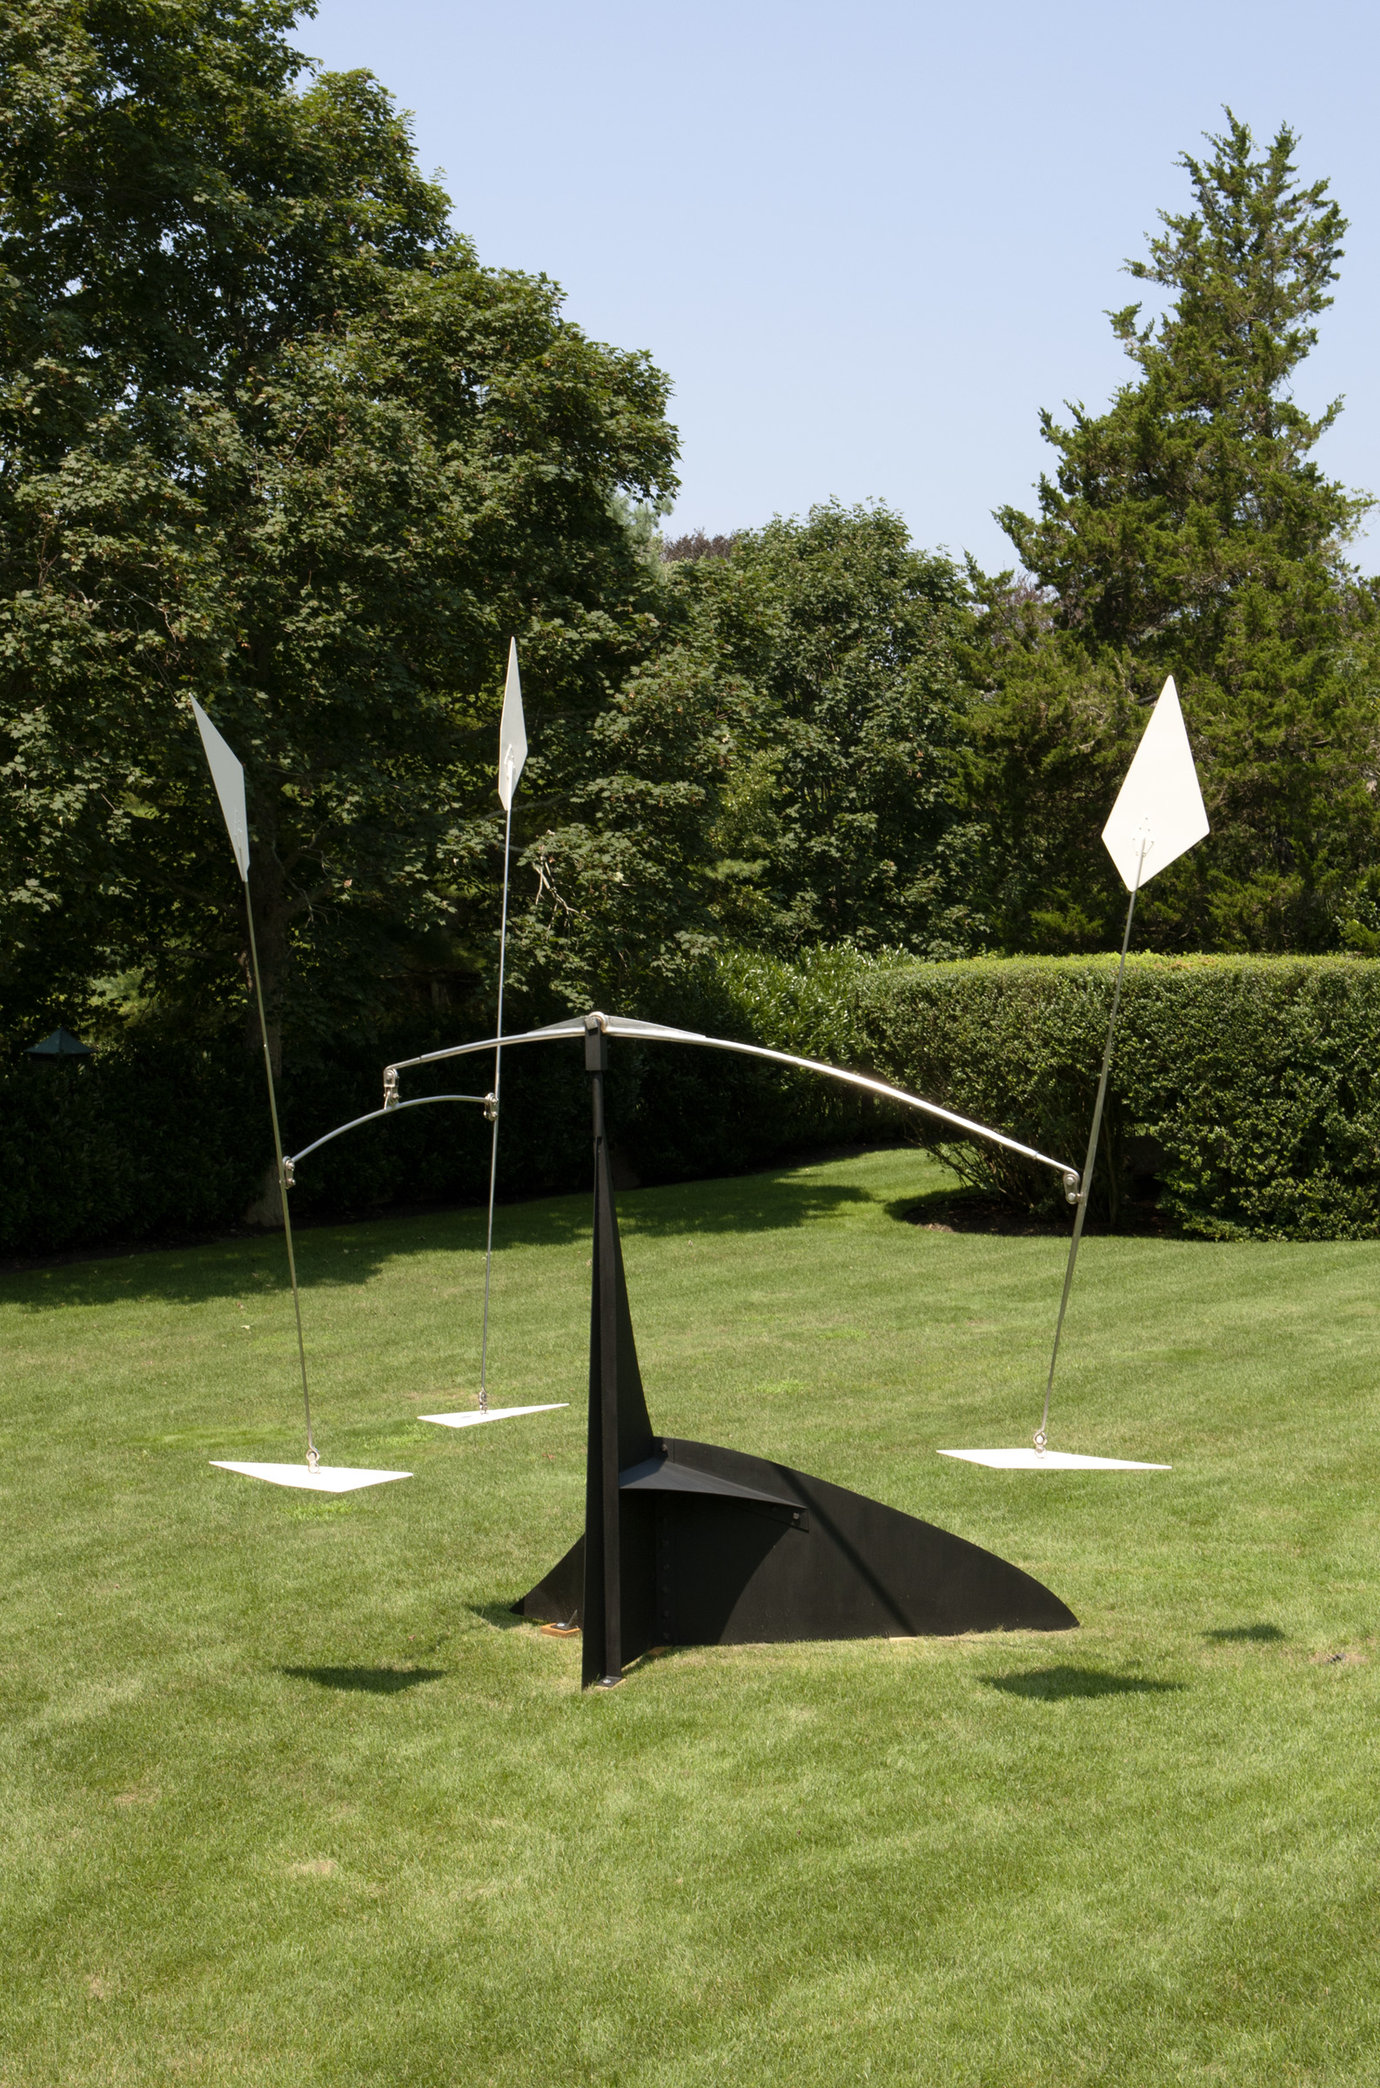 "sheet metal and paint, 16' 6"" x 14' 1"" x 9' 9"" (502.9 cm x 429.3 cm x 297.2 cm)."